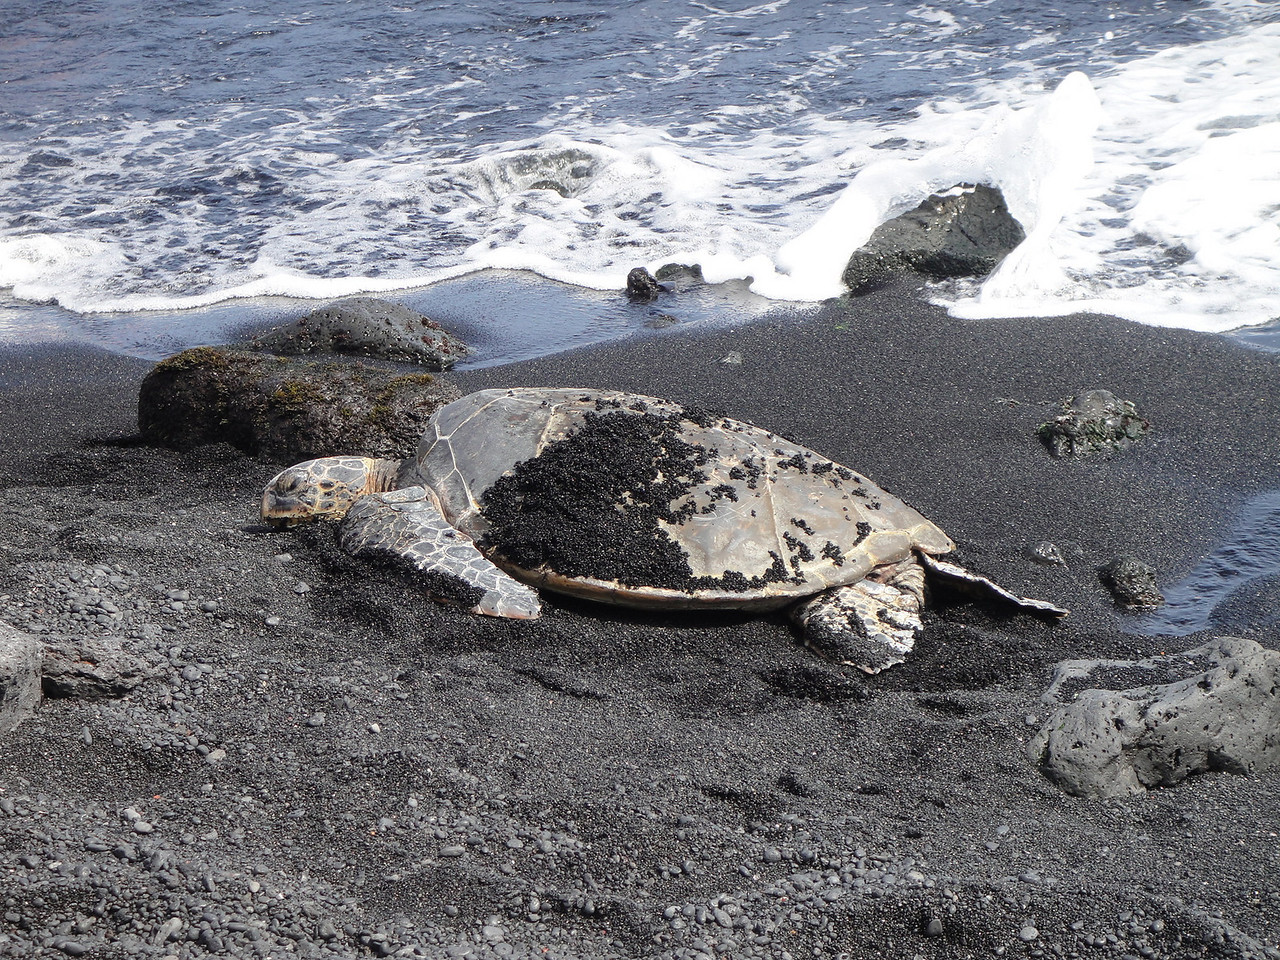 This is one of the only places where turtles sun themselves on the beach.  So nice to get to see them in nature.